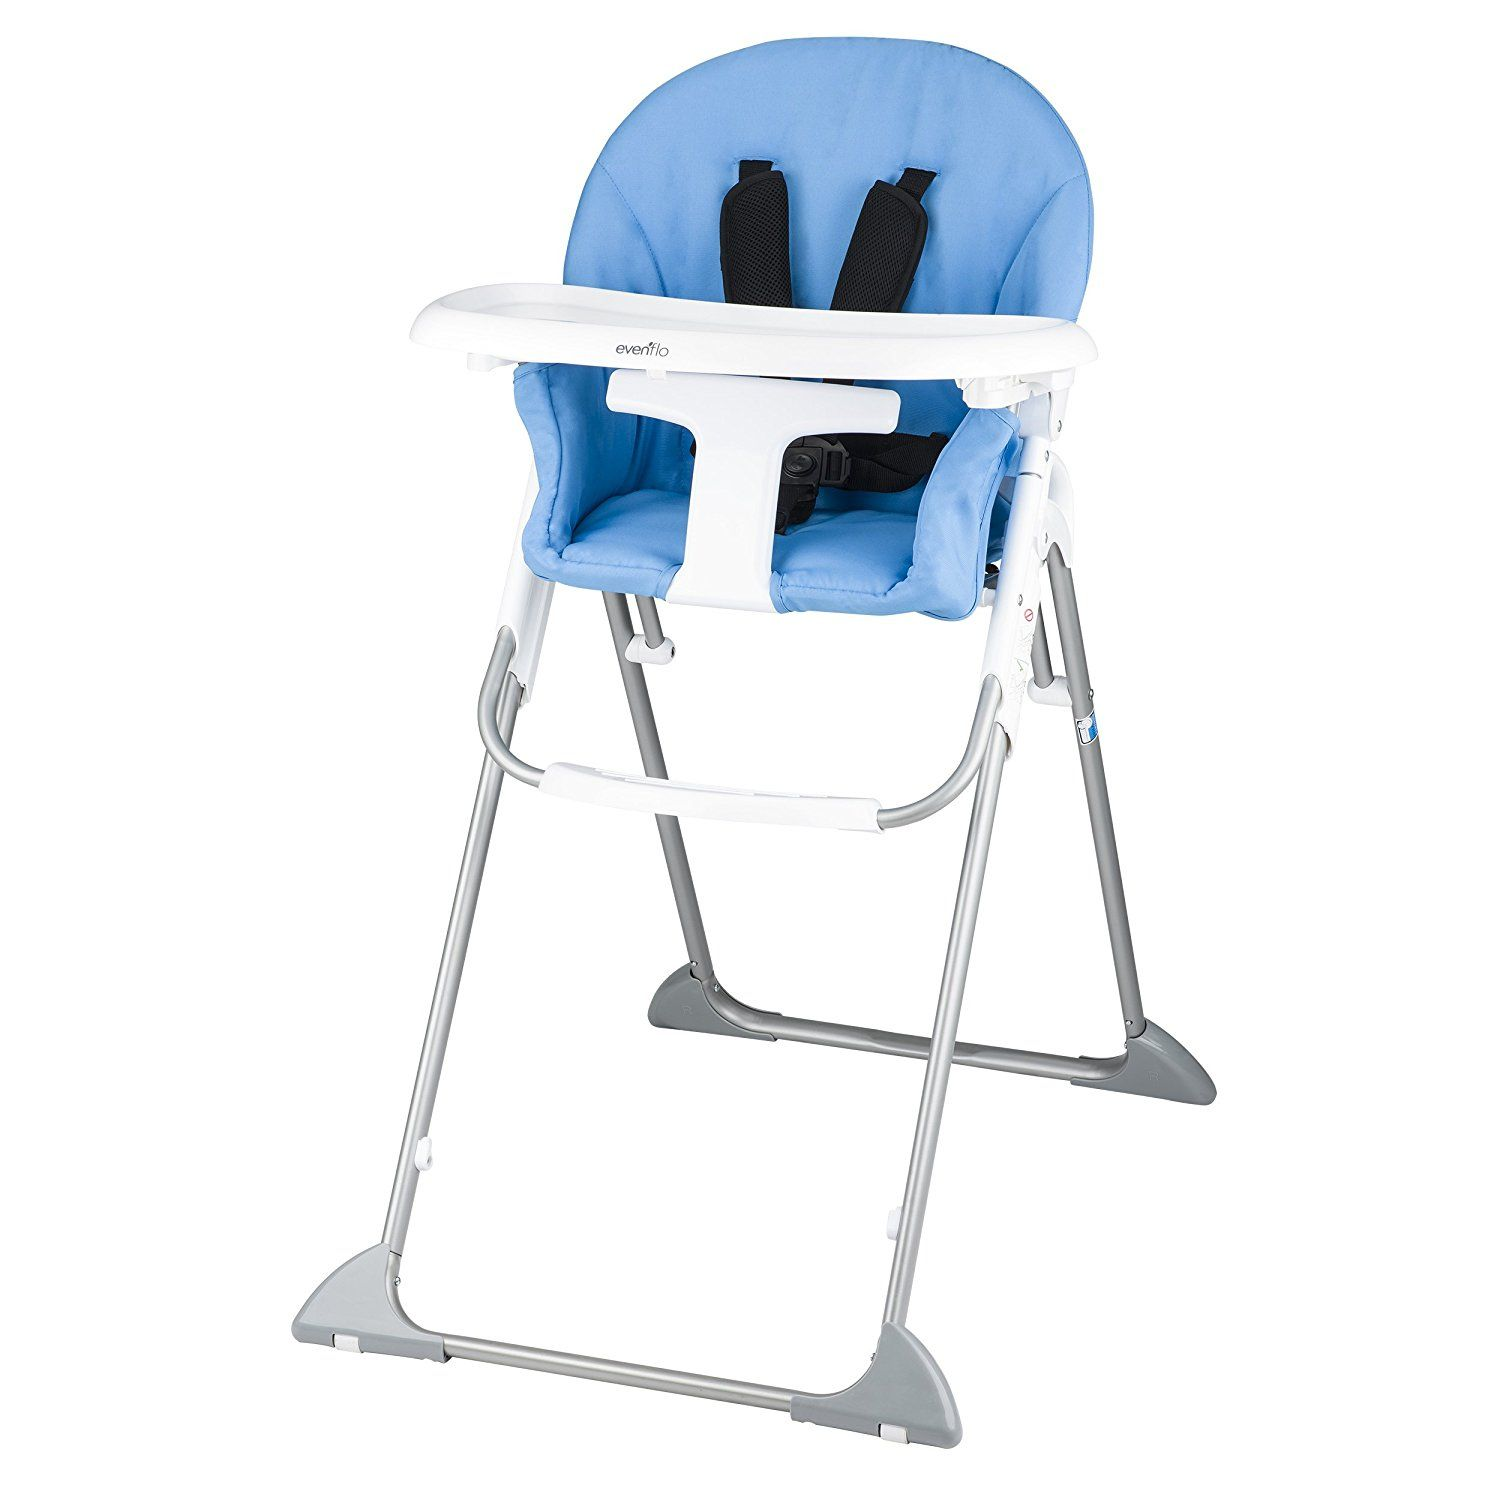 100 Folding High Chair Reviews Cheap Kitchen island Ideas Check